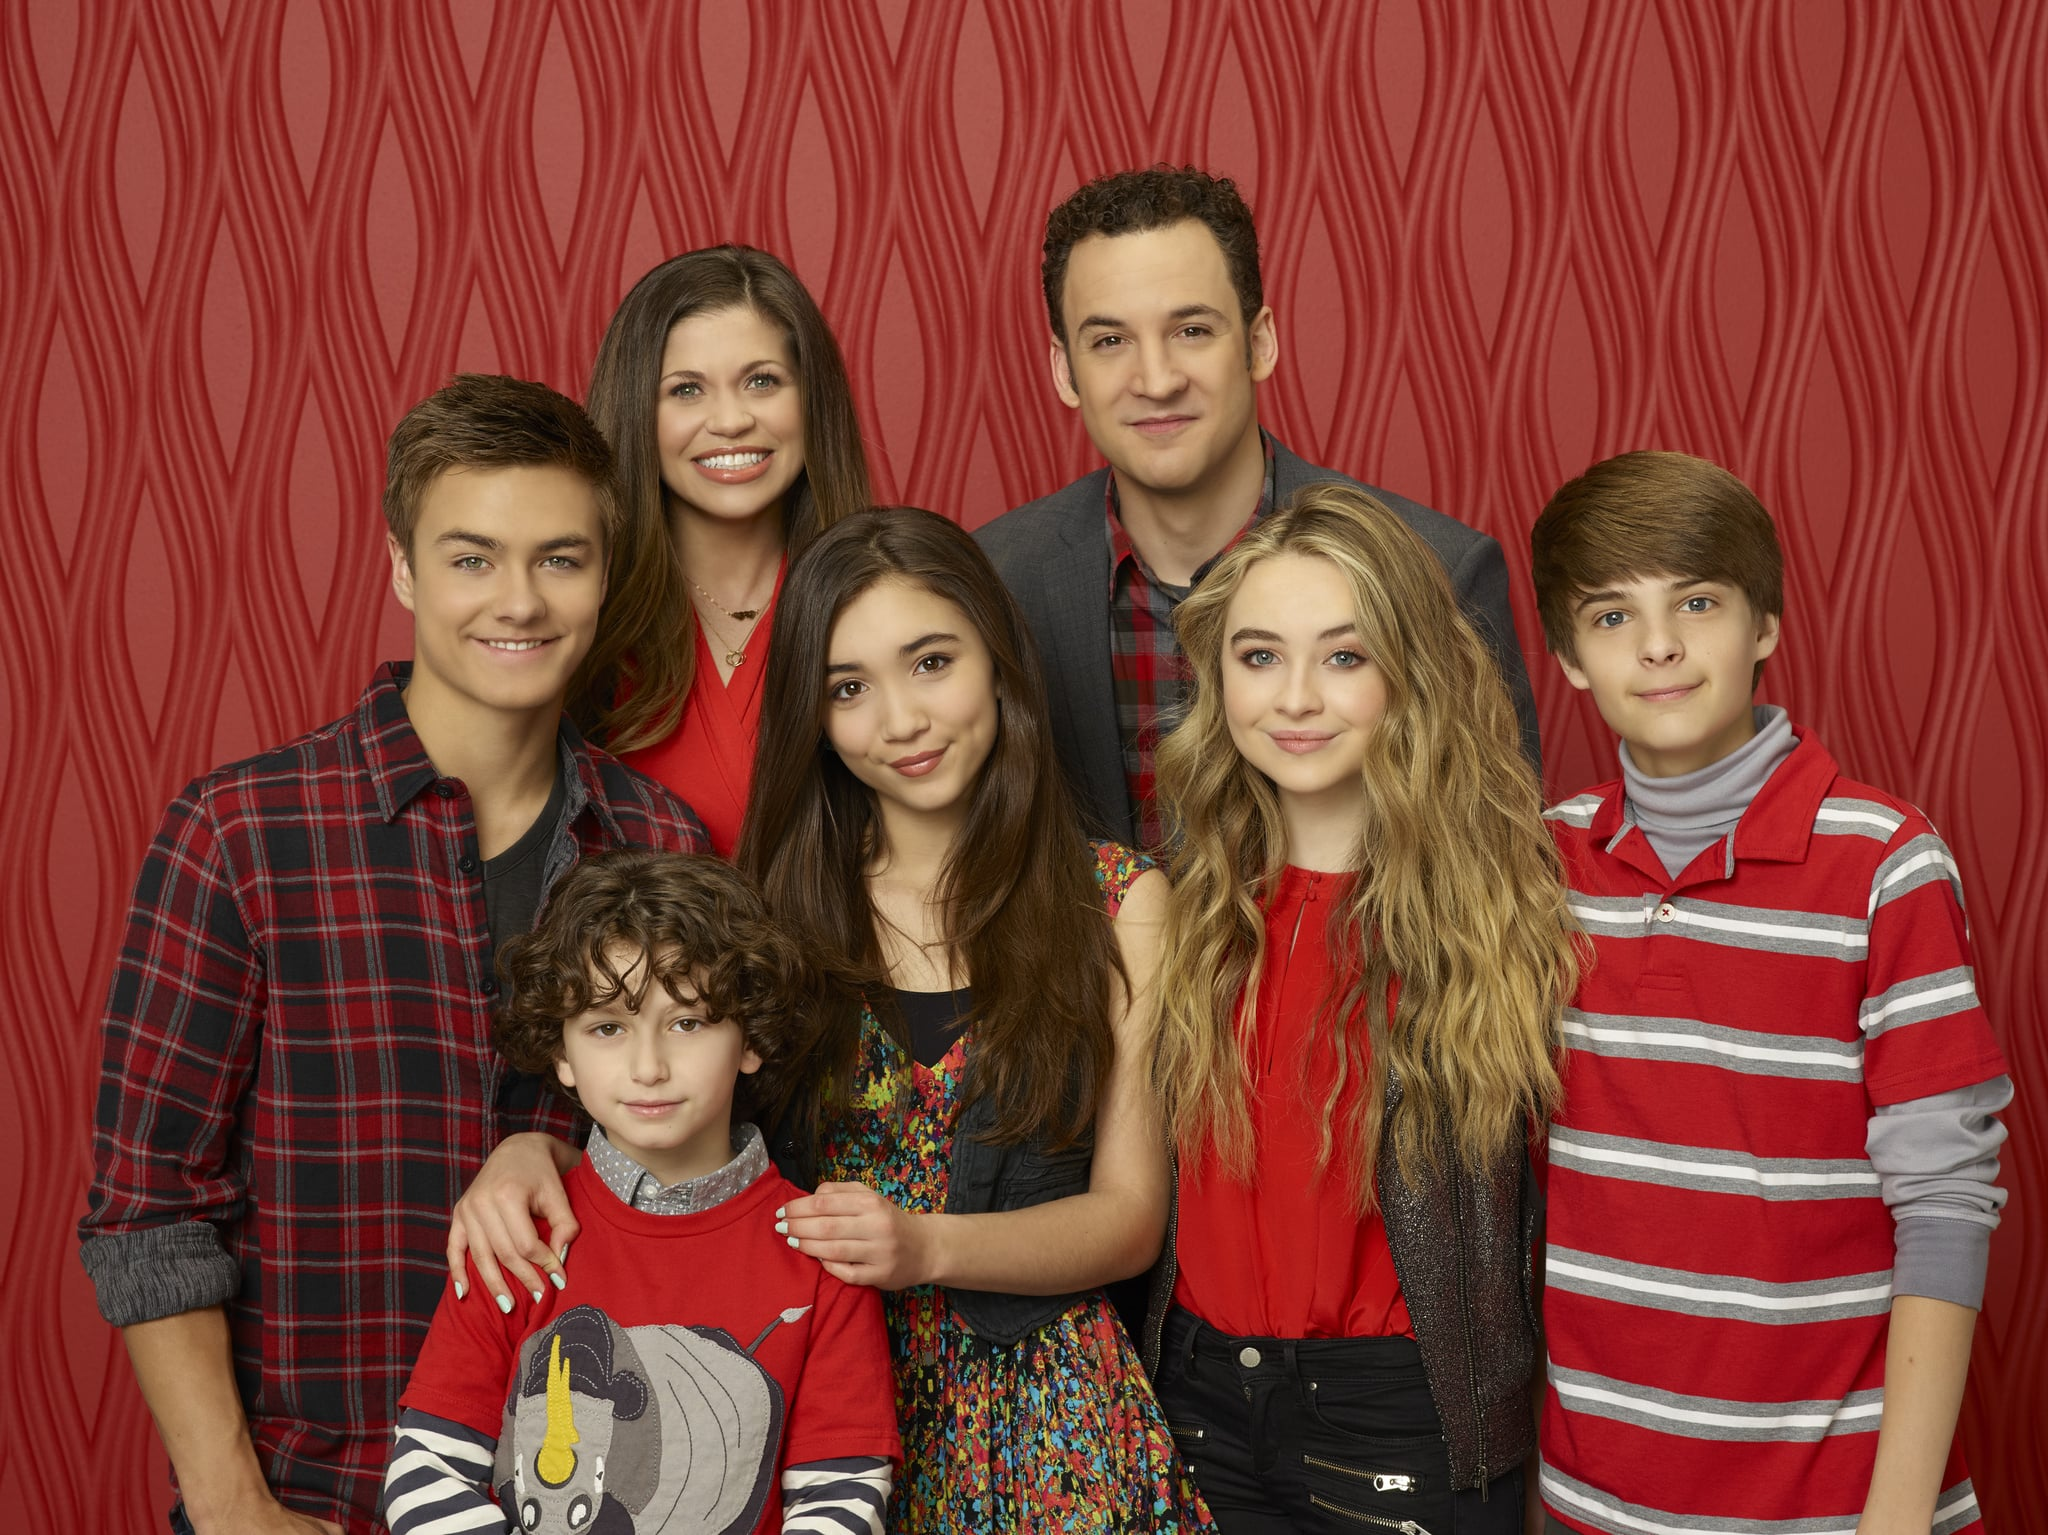 All Episodes Of Girl Meets World